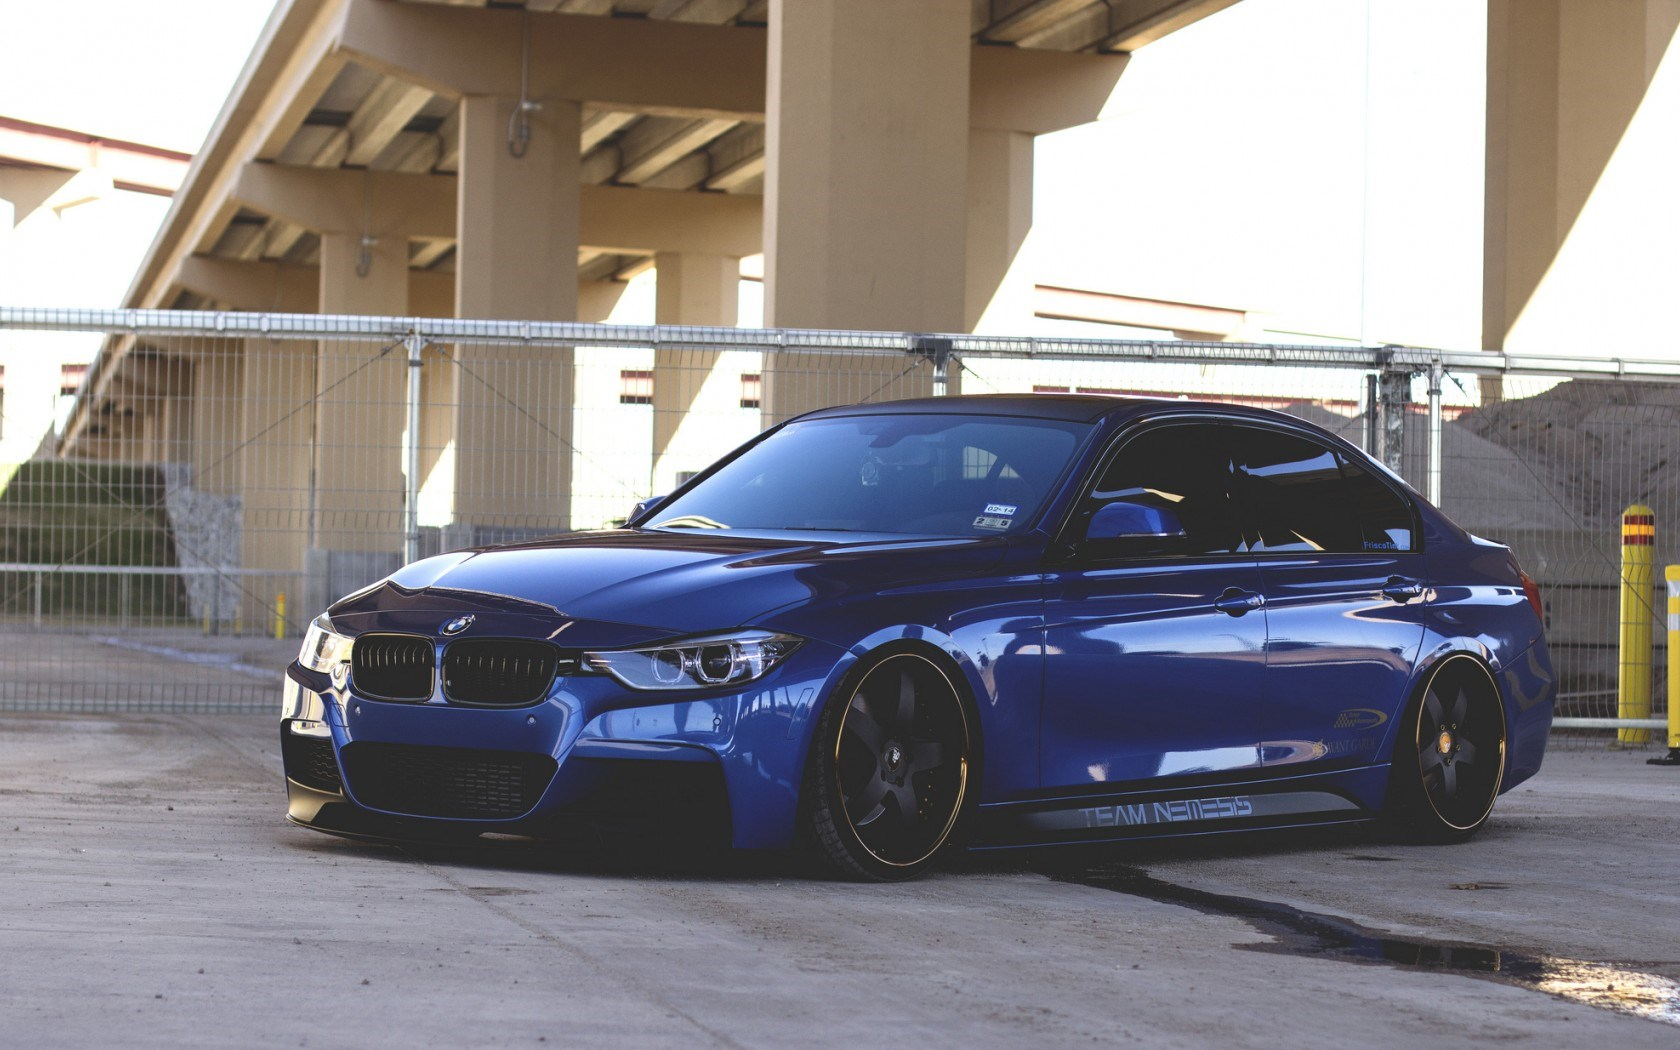 BMW F30 335i Car Tuning Wheels wallpaper | 1680x1050 | #16147